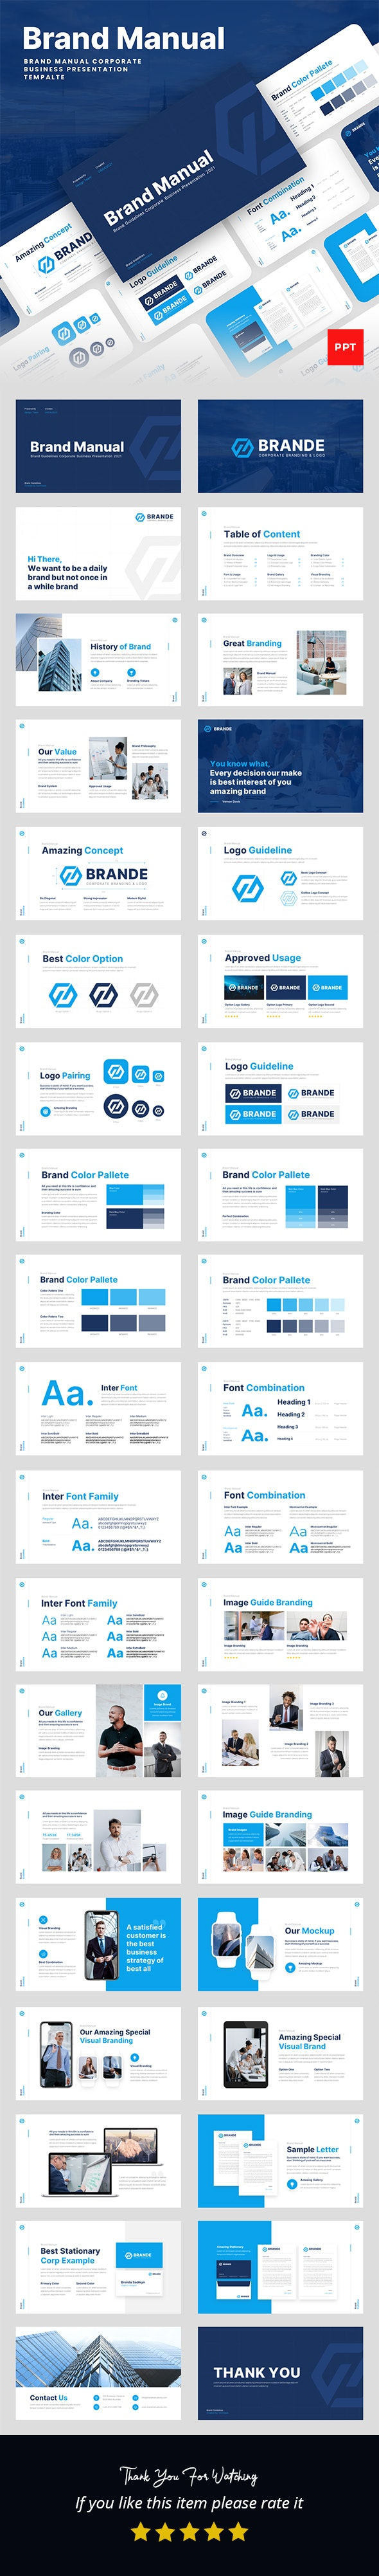 Brand Manual PowerPoint Presentation Template - Business PowerPoint Templates